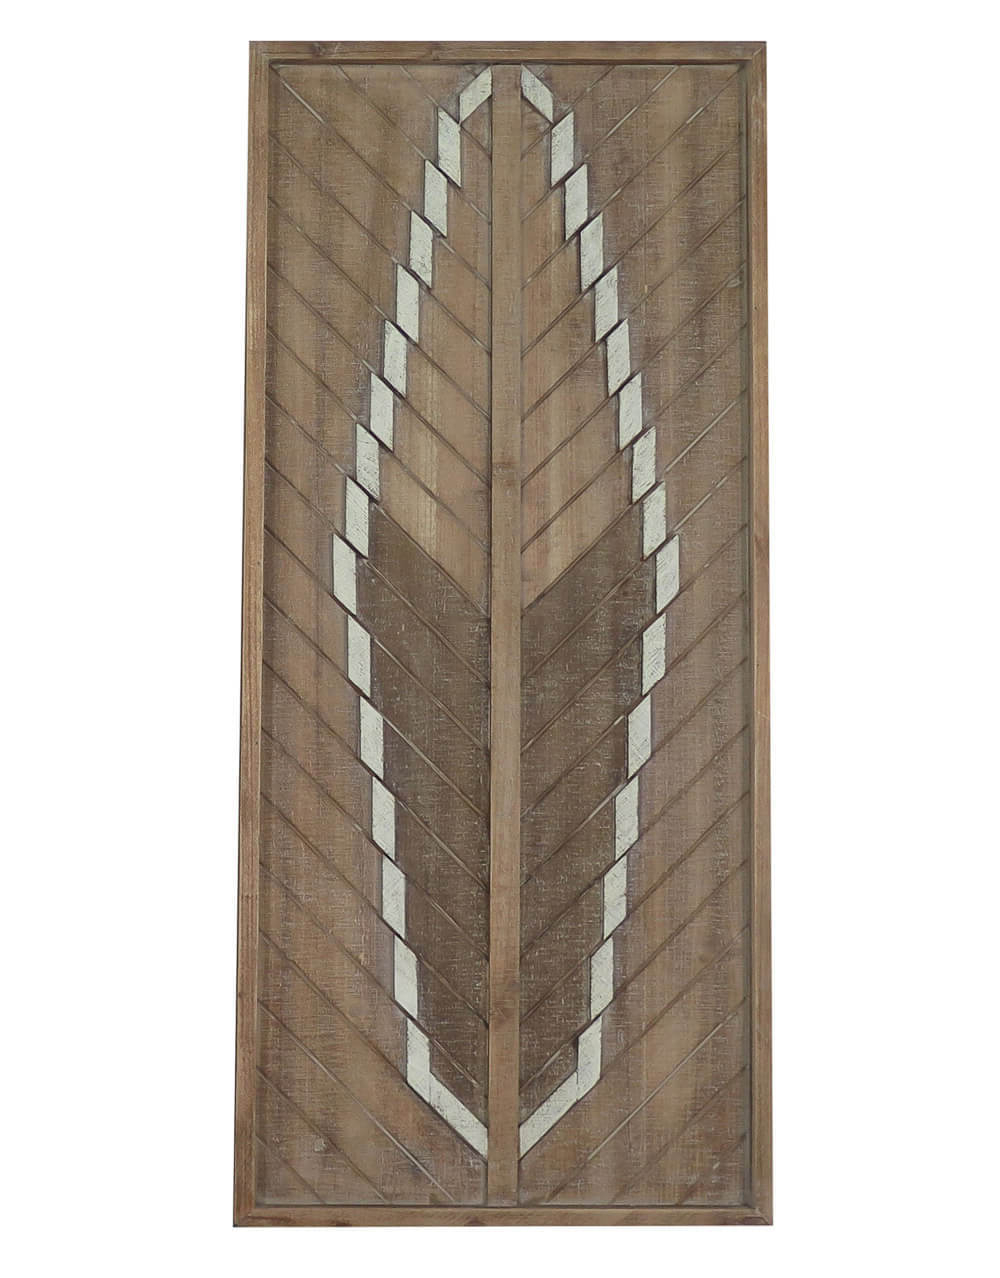 Best And Newest Buy Arrow Feather Detail Large Frame Wall Tribal Art Decor Regarding Brown Metal Tribal Arrow Wall Decor (View 20 of 20)